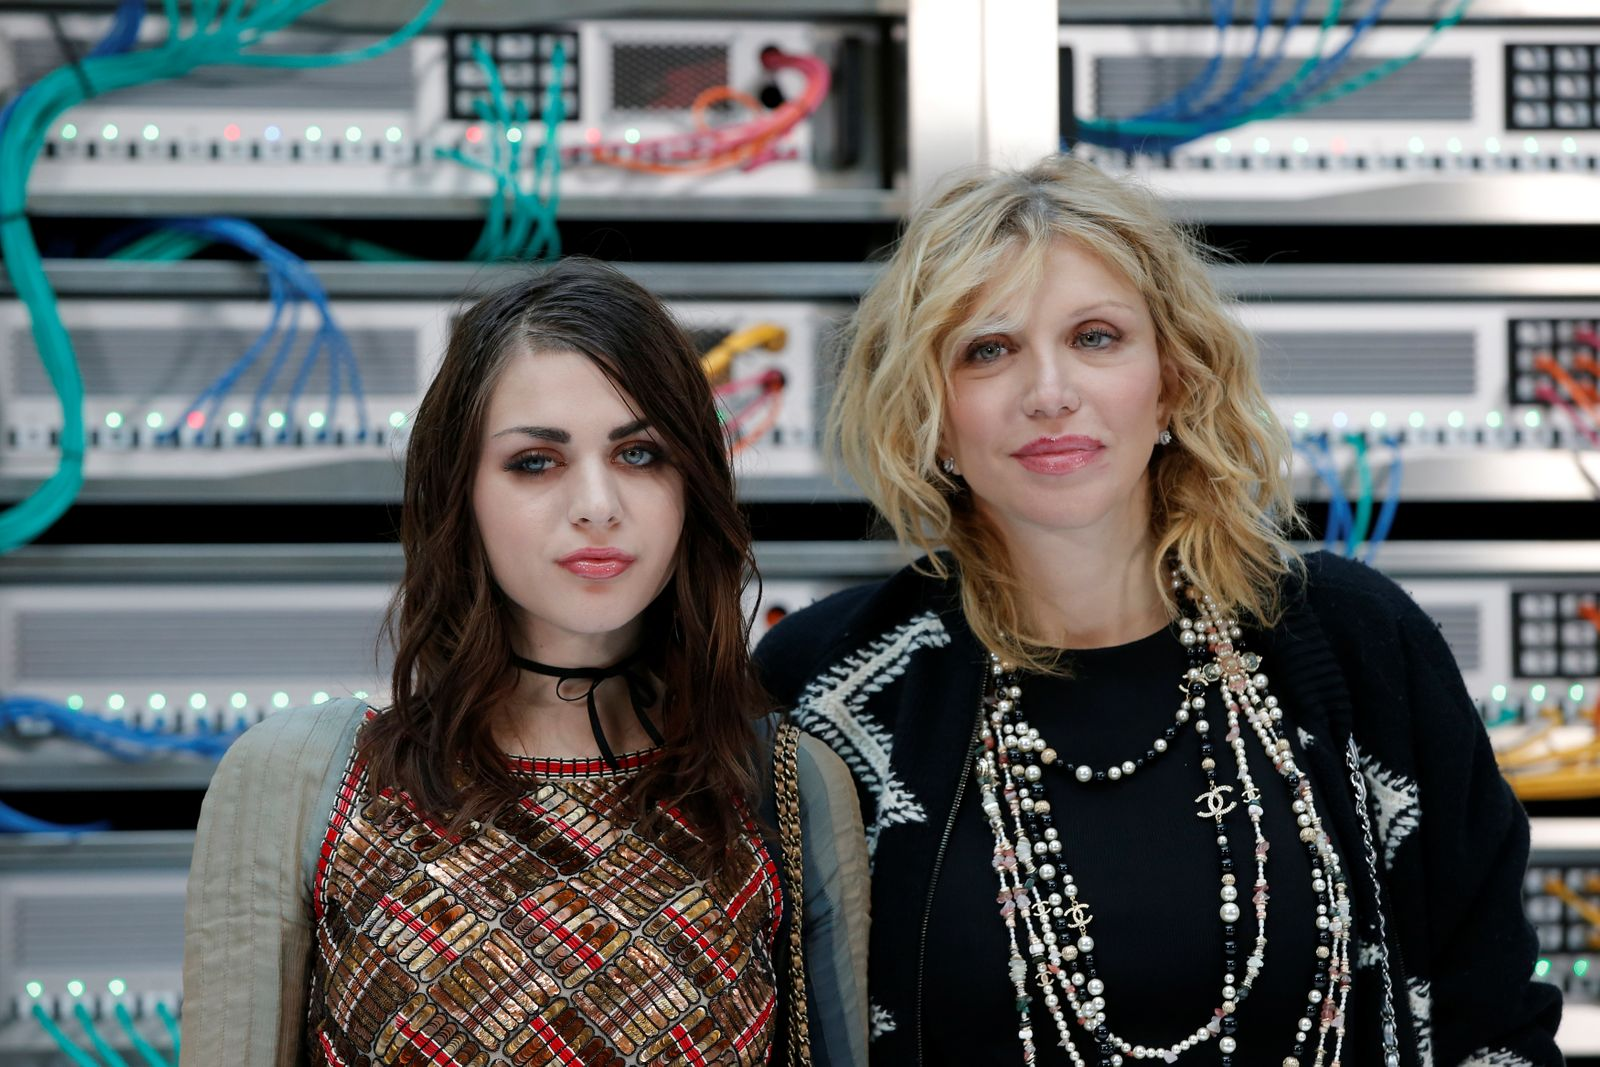 Musician Courtney Love and her daughter and producer Frances Bean Cobain pose during a photocall before the Spring/Summer 2017 women's ready-to-wear collection for fashion house Chanel during Fashion Week in Paris